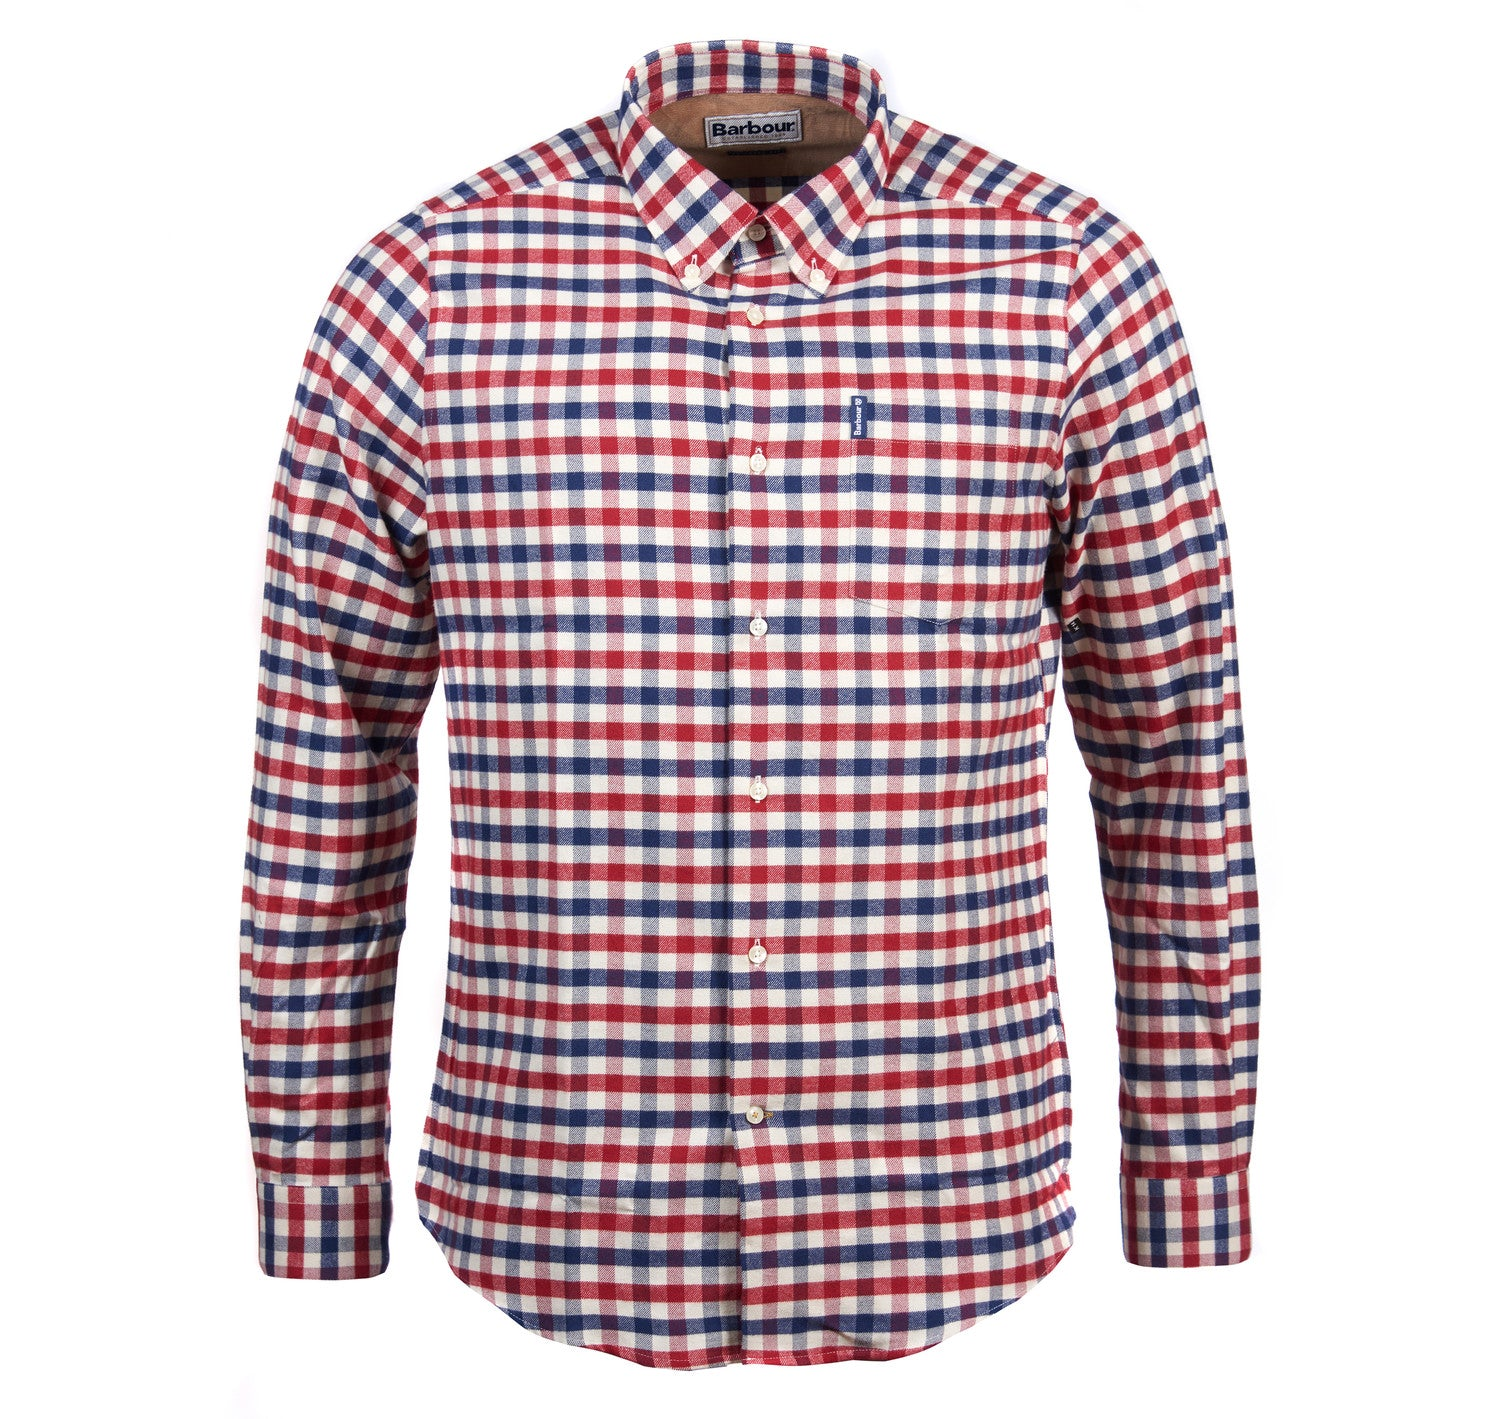 Barbour Country Check 3 Tailored Shirt for Men in Red